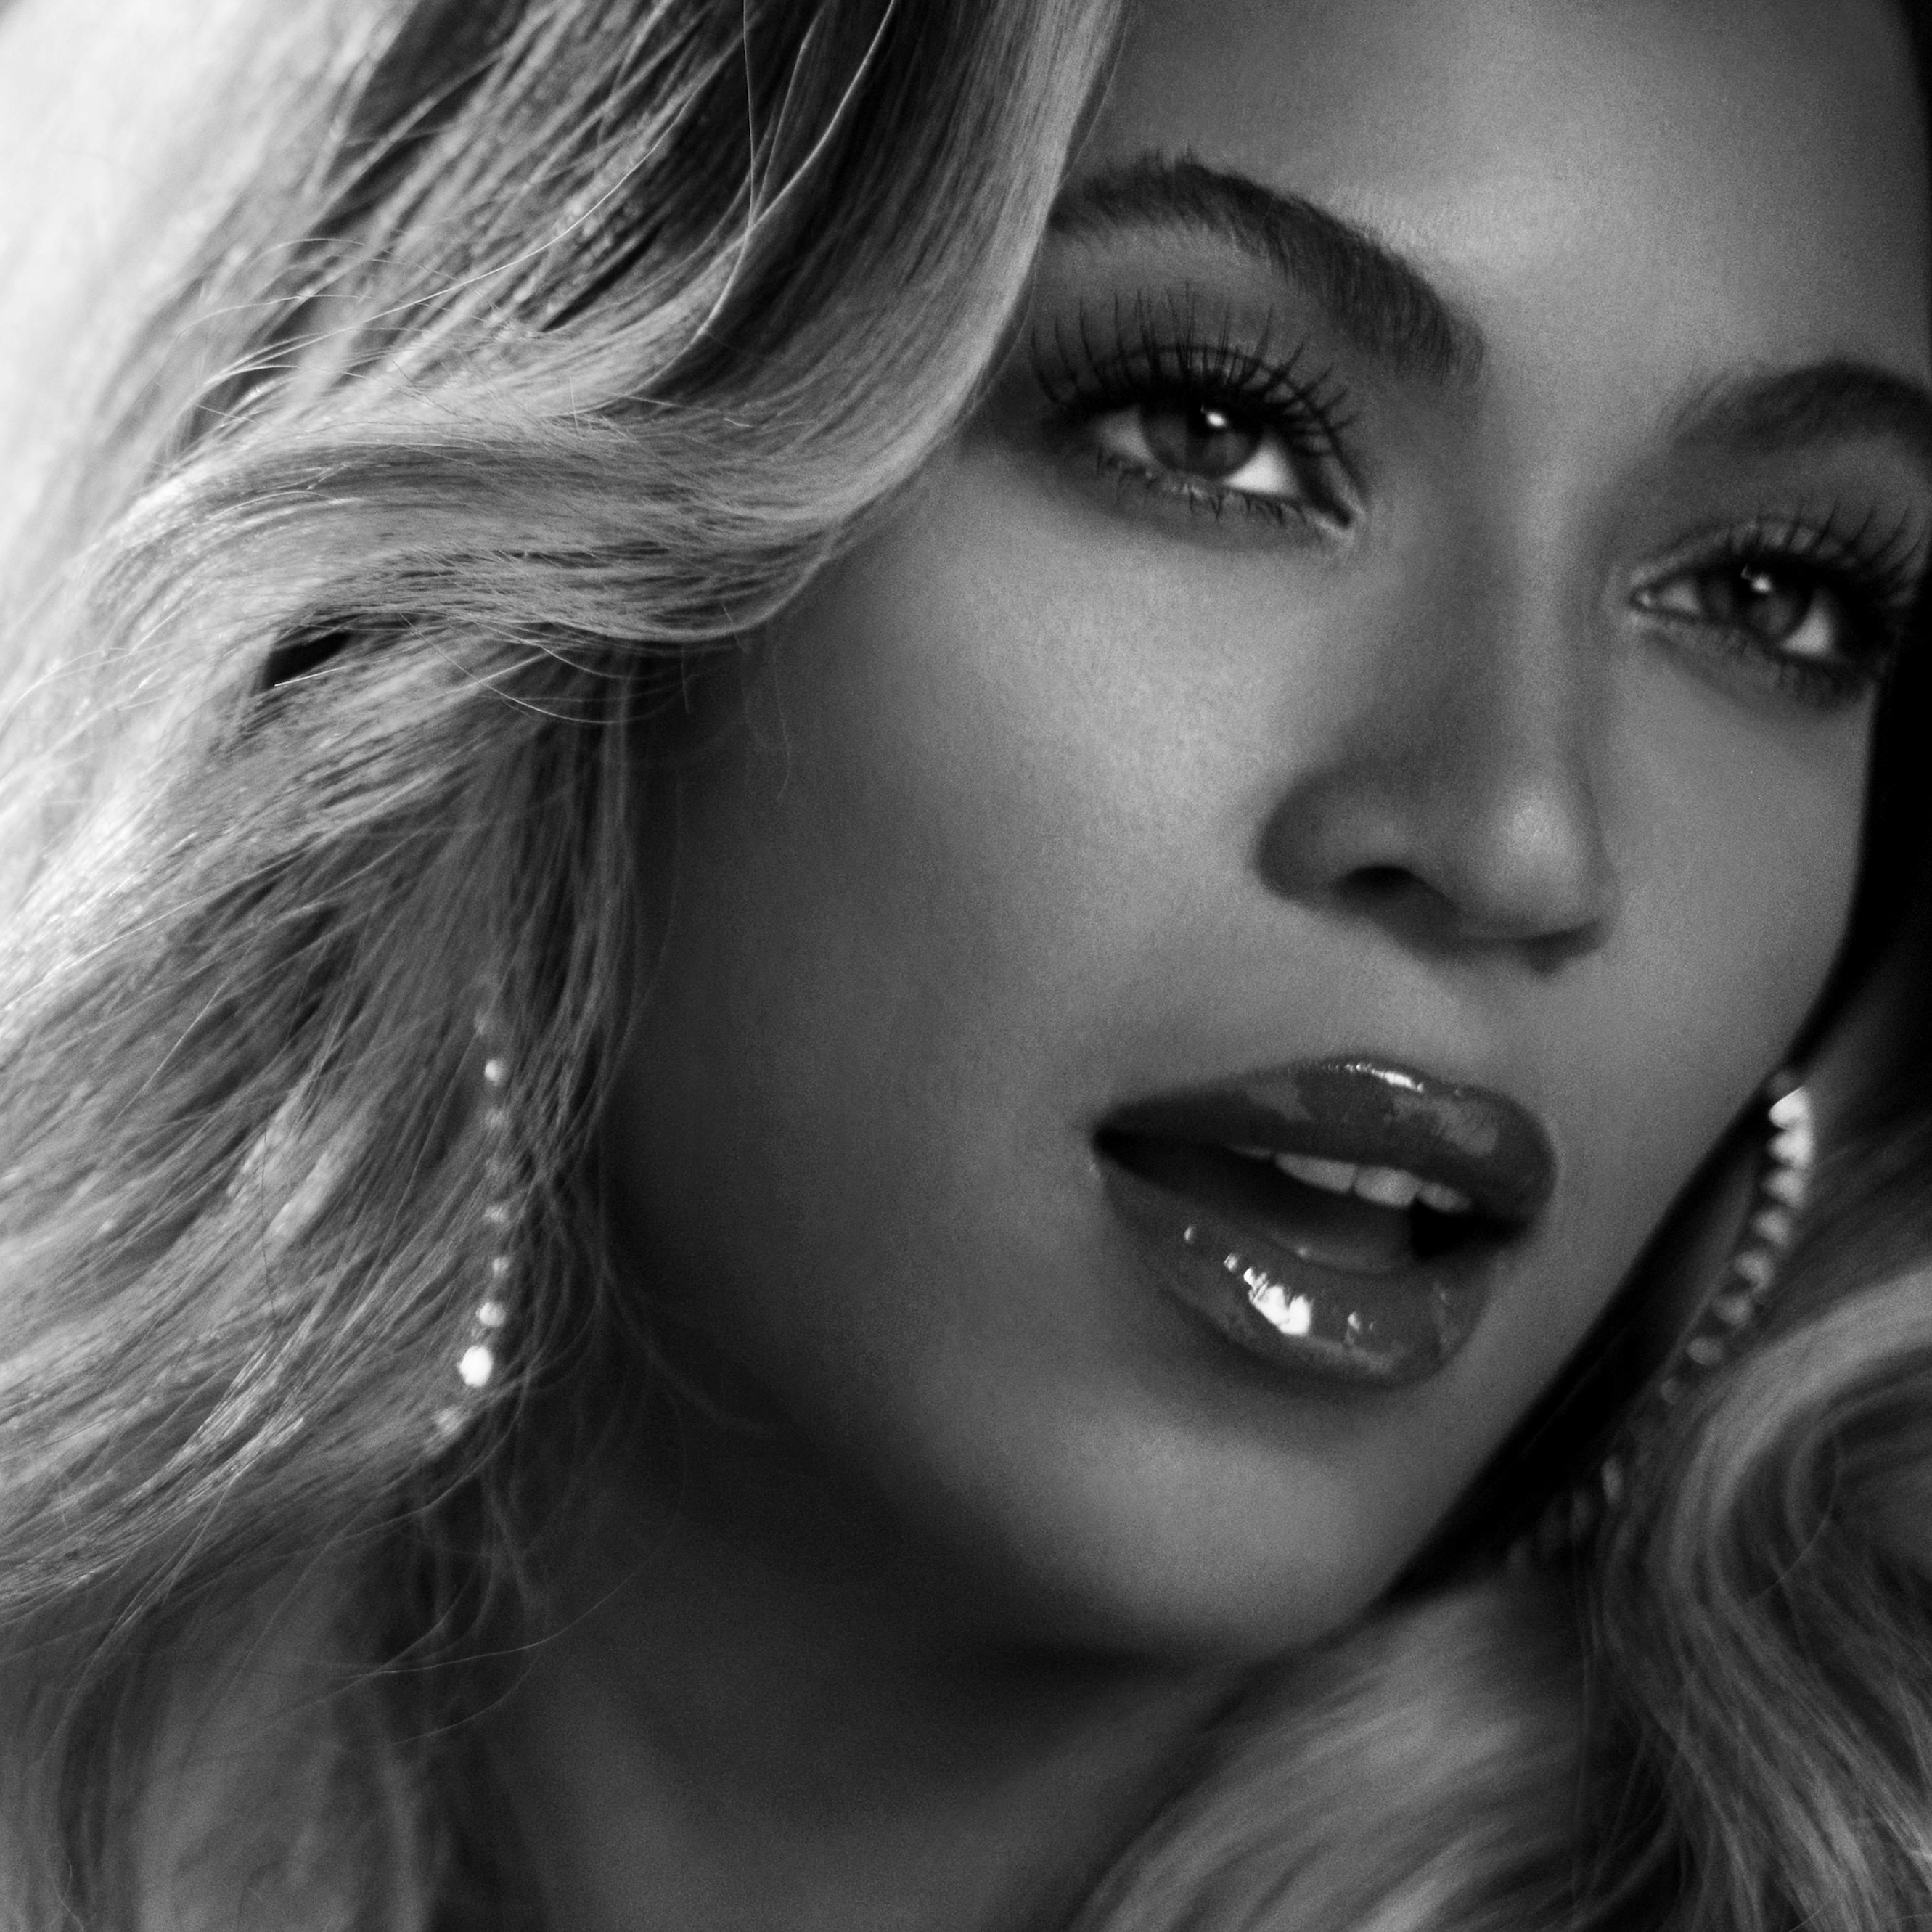 Beyonce in Black & White Wallpaper for Apple iPhone 6 Plus